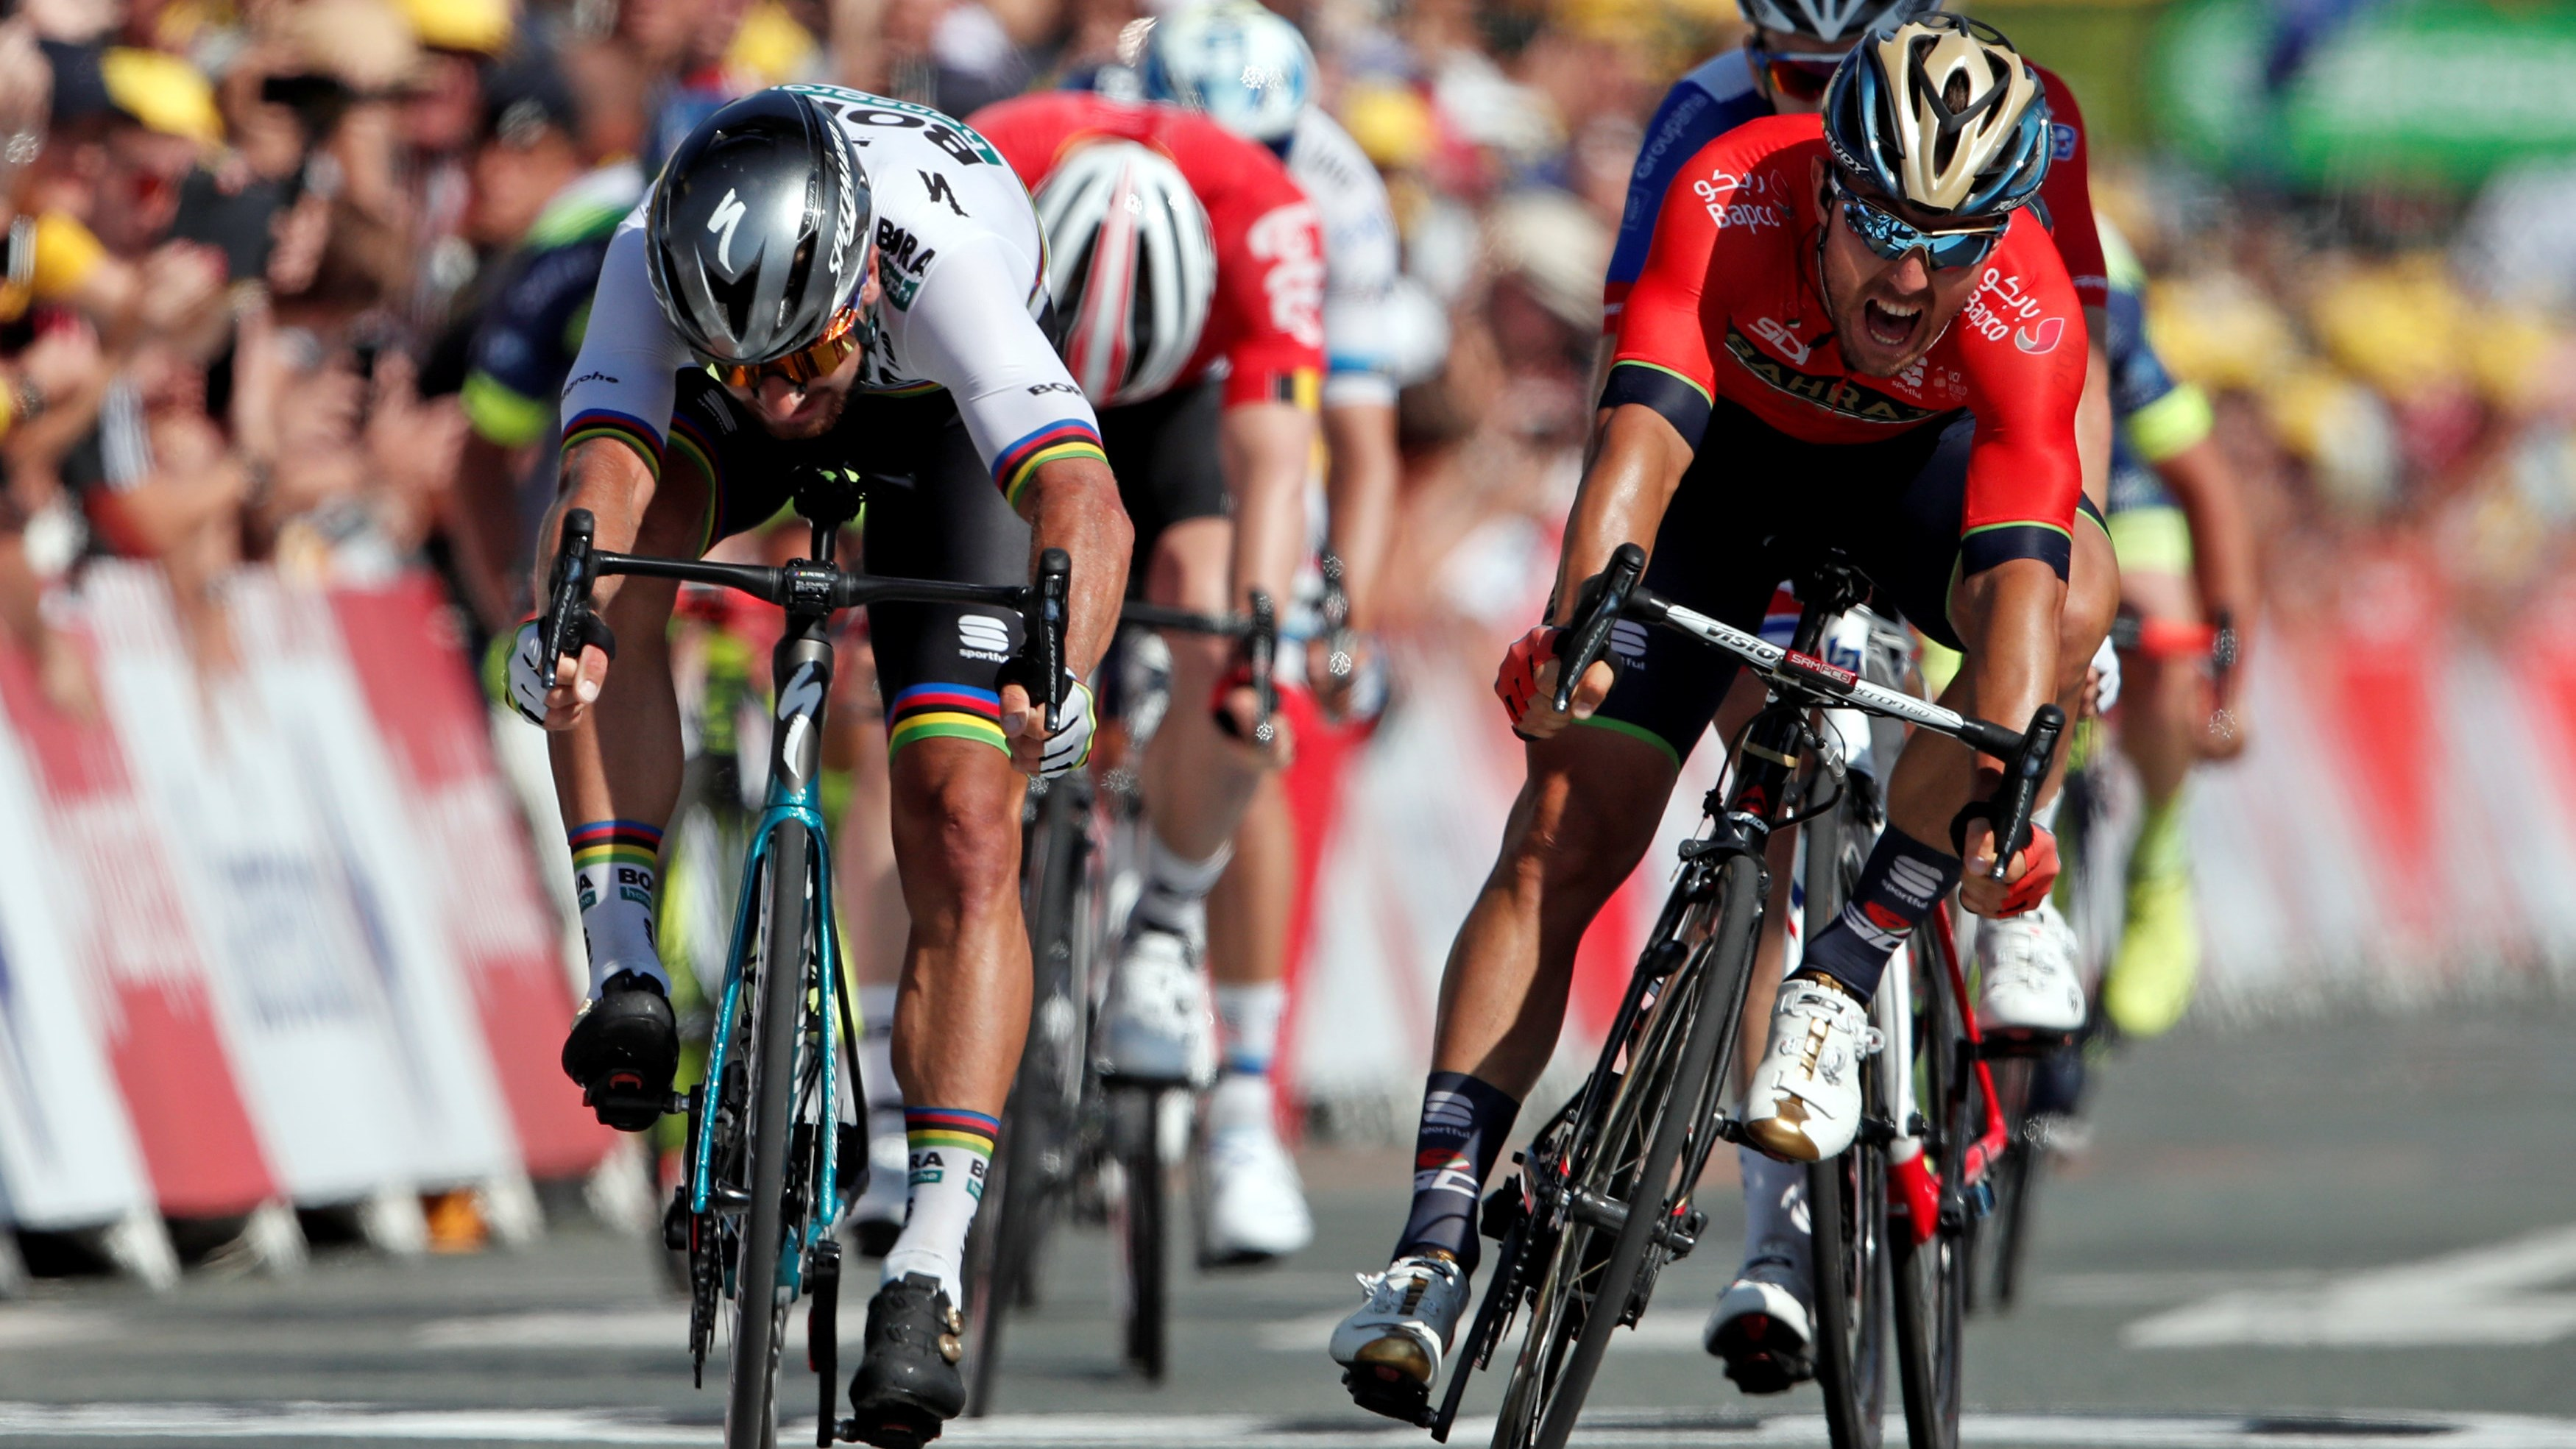 Tour de france stage 9 betting preview on betfair best online sports betting site canada